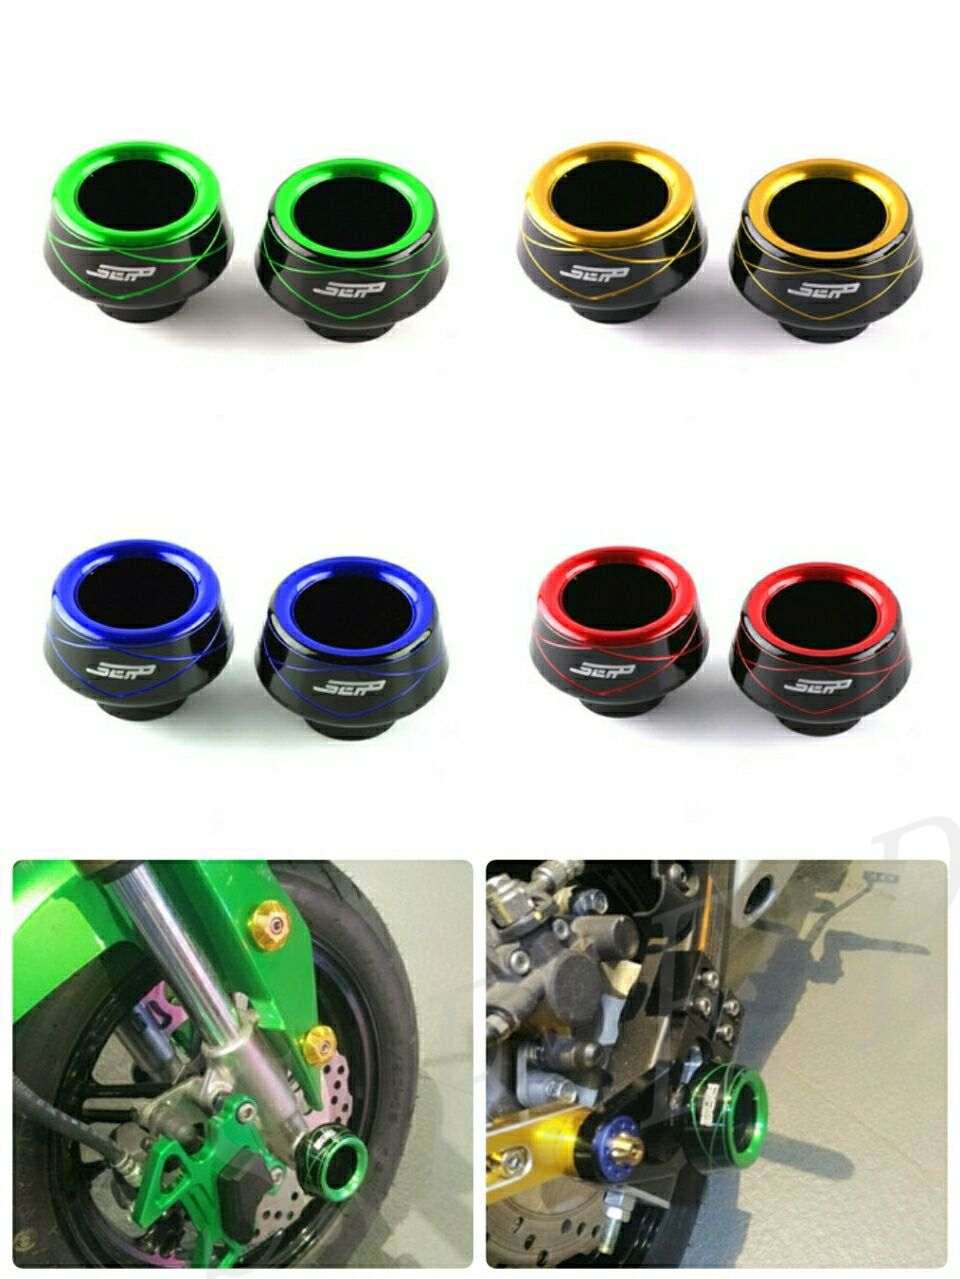 Universal CNC Front Rear Fork Wheel Fall Protection <font><b>Frame</b></font> <font><b>Slider</b></font> Anti Crash Protector For <font><b>Kawasaki</b></font> Z125 <font><b>Z650</b></font> Z900 Ninja 250/300 image